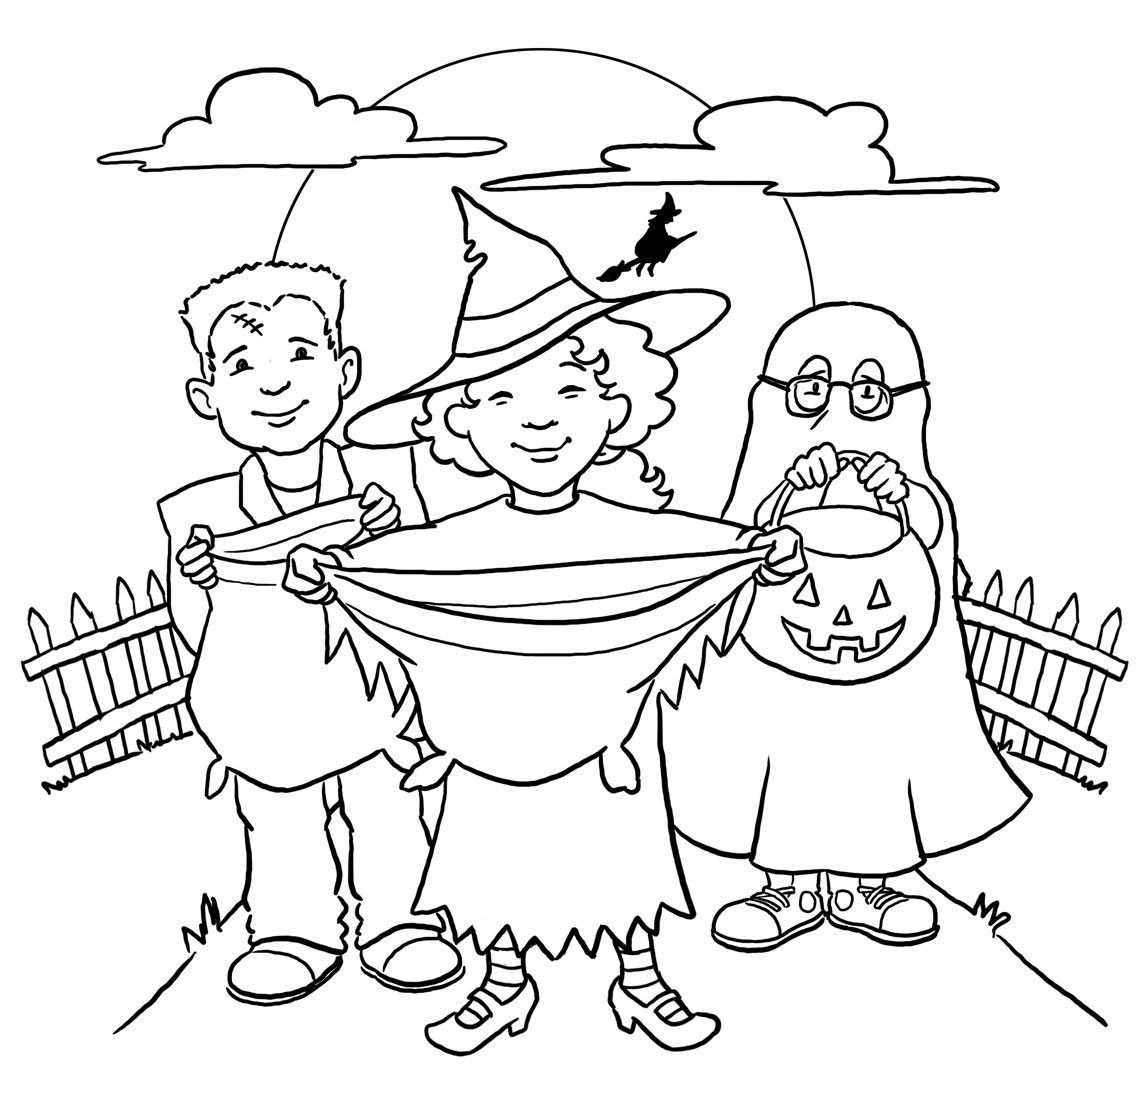 1147x1103 Trick Or Treat Coloring Pages, Halloween Trick Treating Printables